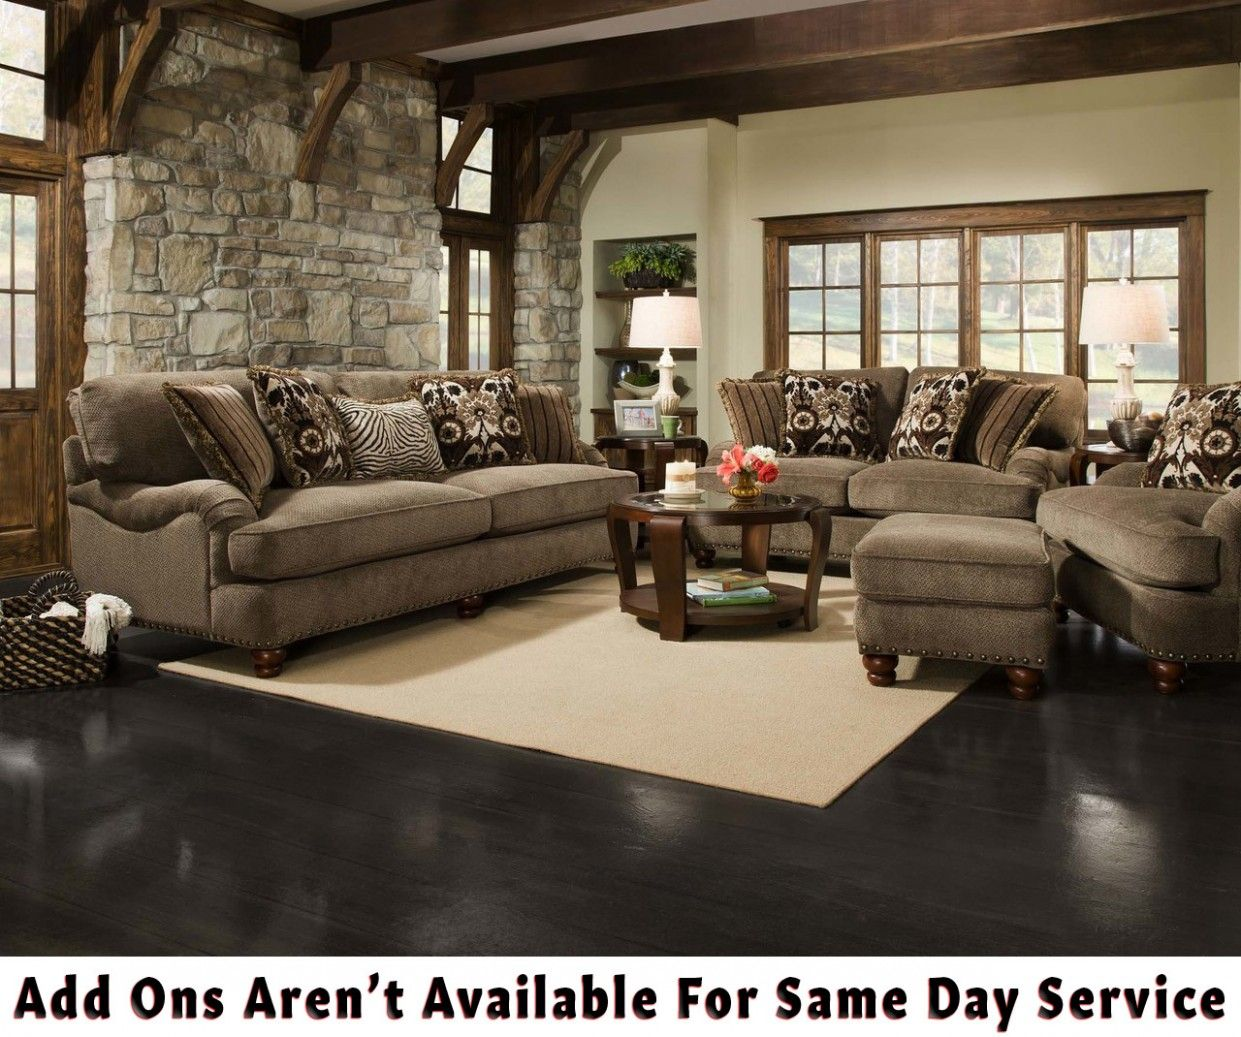 What You Should Wear To Mink Sofa Living Room Ideas Mink living room decor